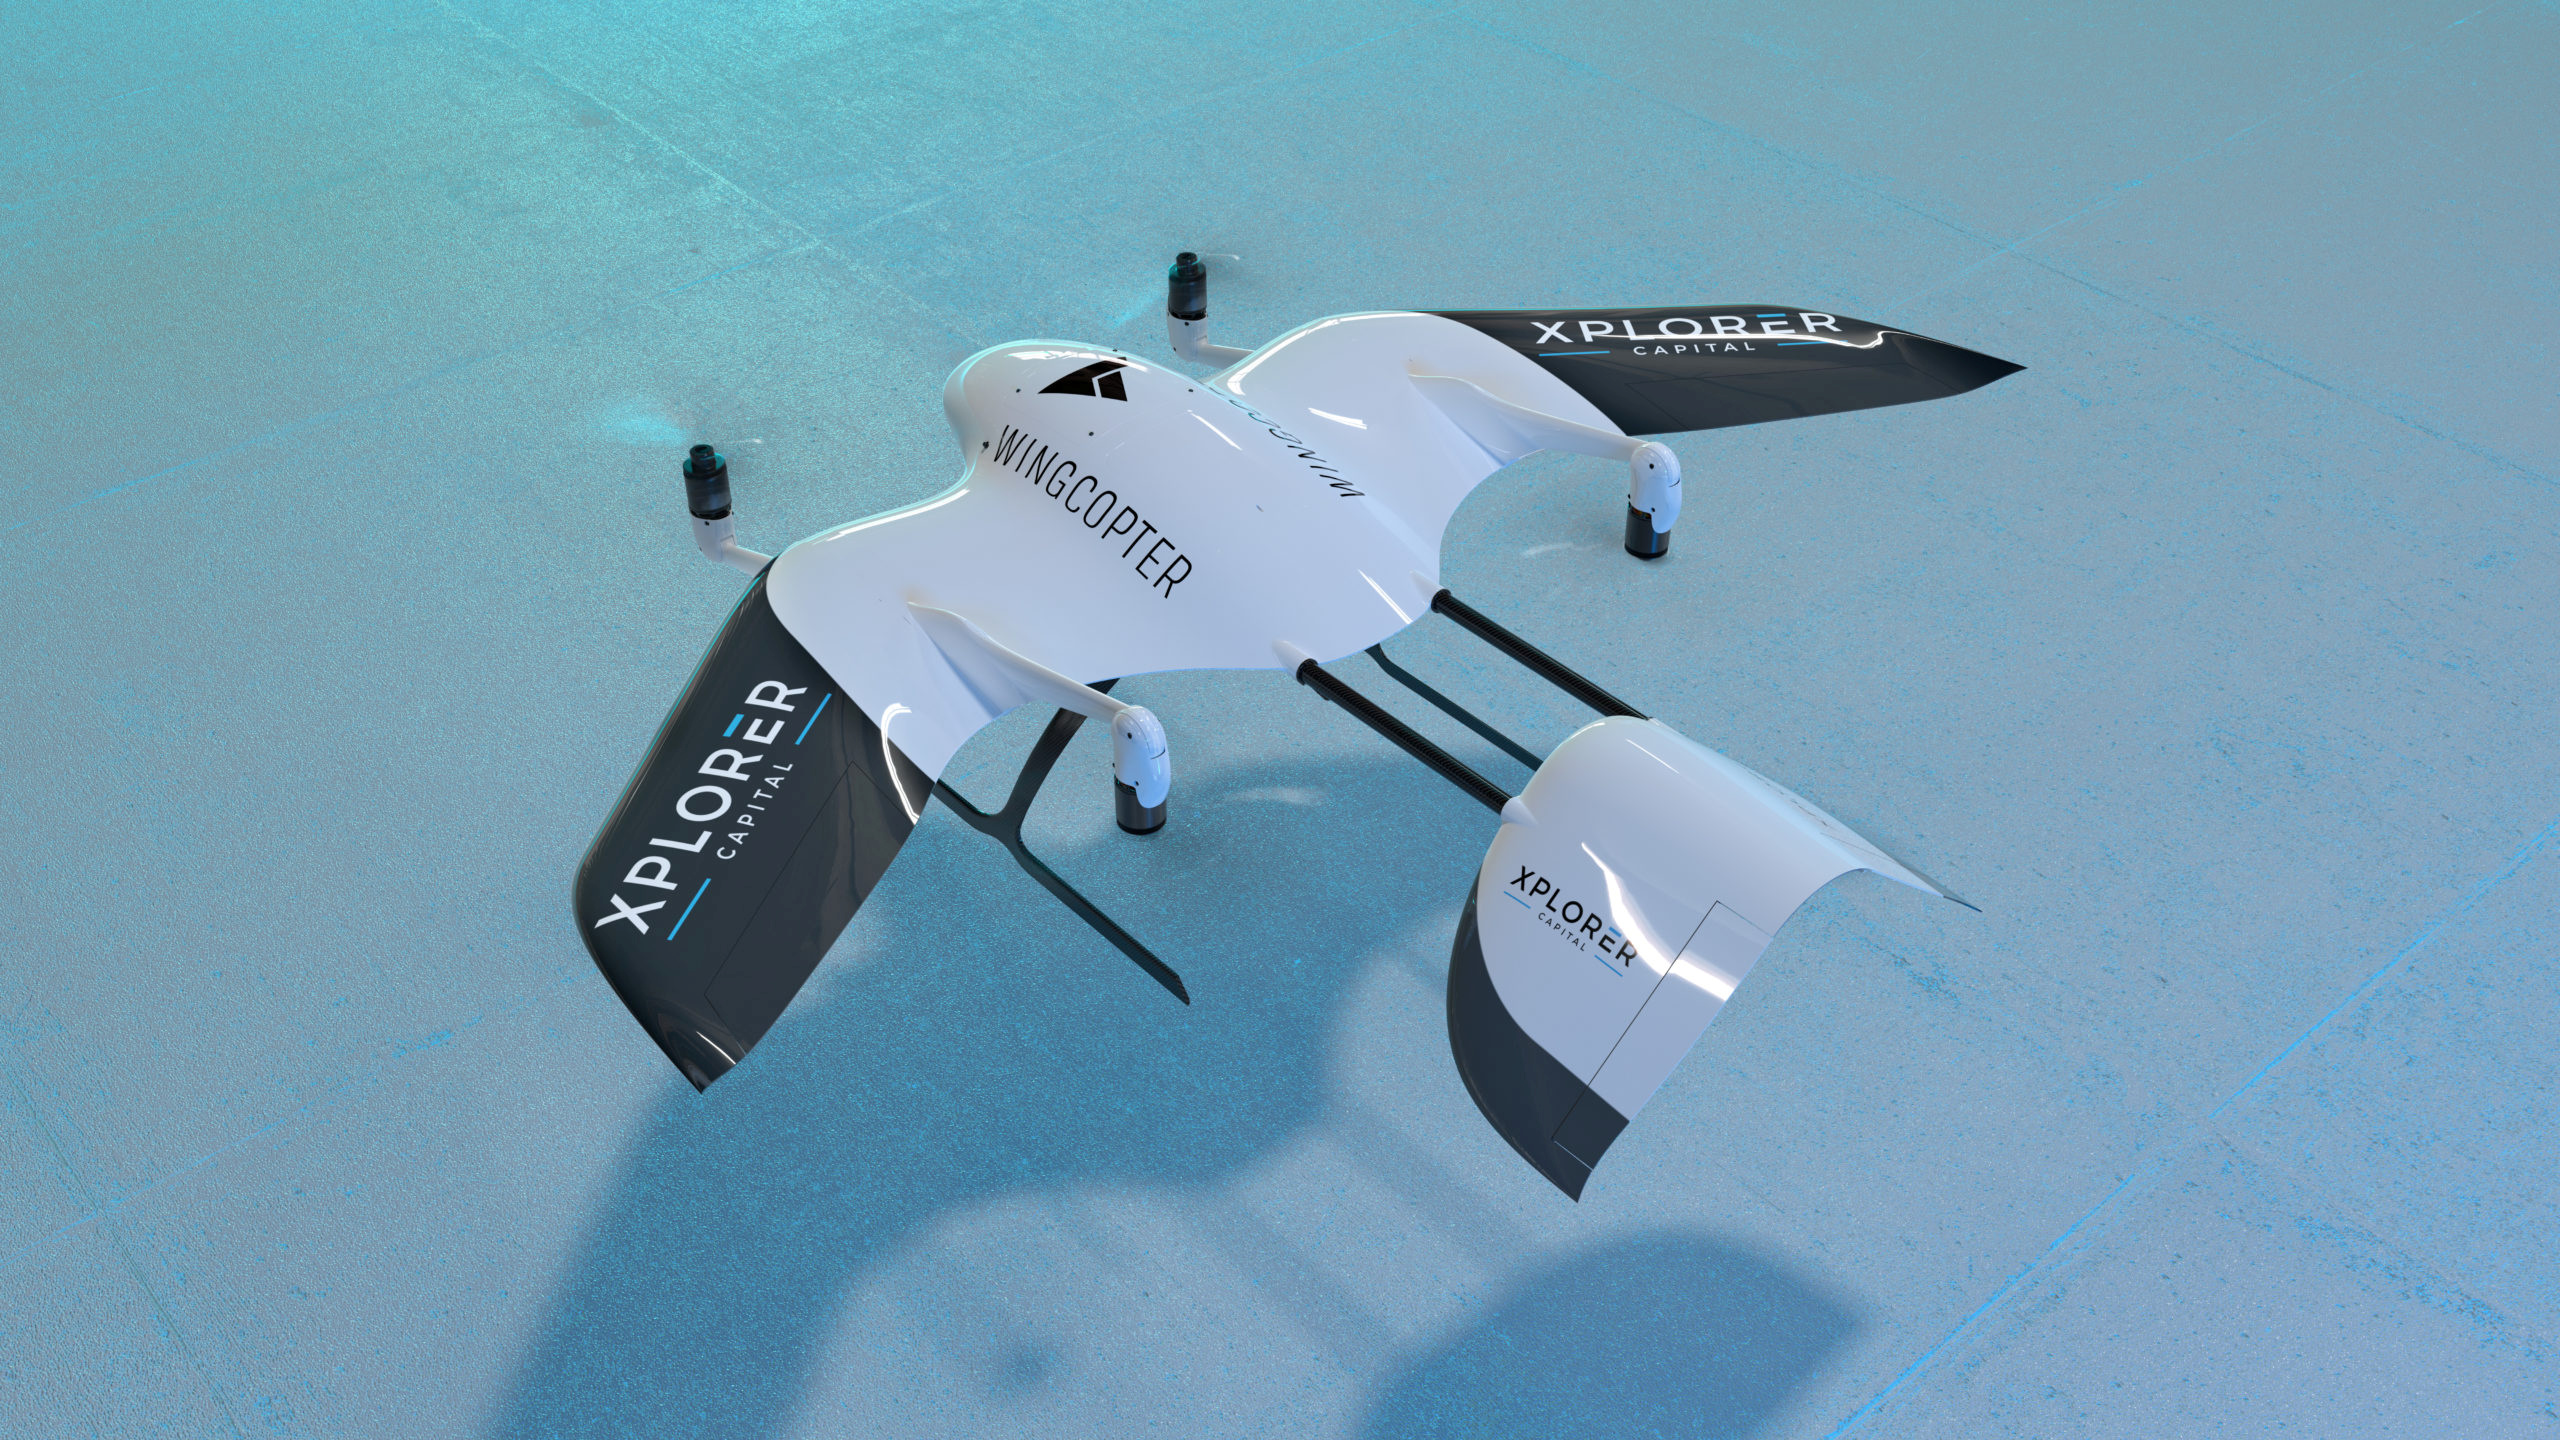 Rendered image of a drone made by German start-up Wingcopter in Weiterstadt, Germany, in this handout obtained on January 25, 2021. Wingcopter/Handout via REUTERS